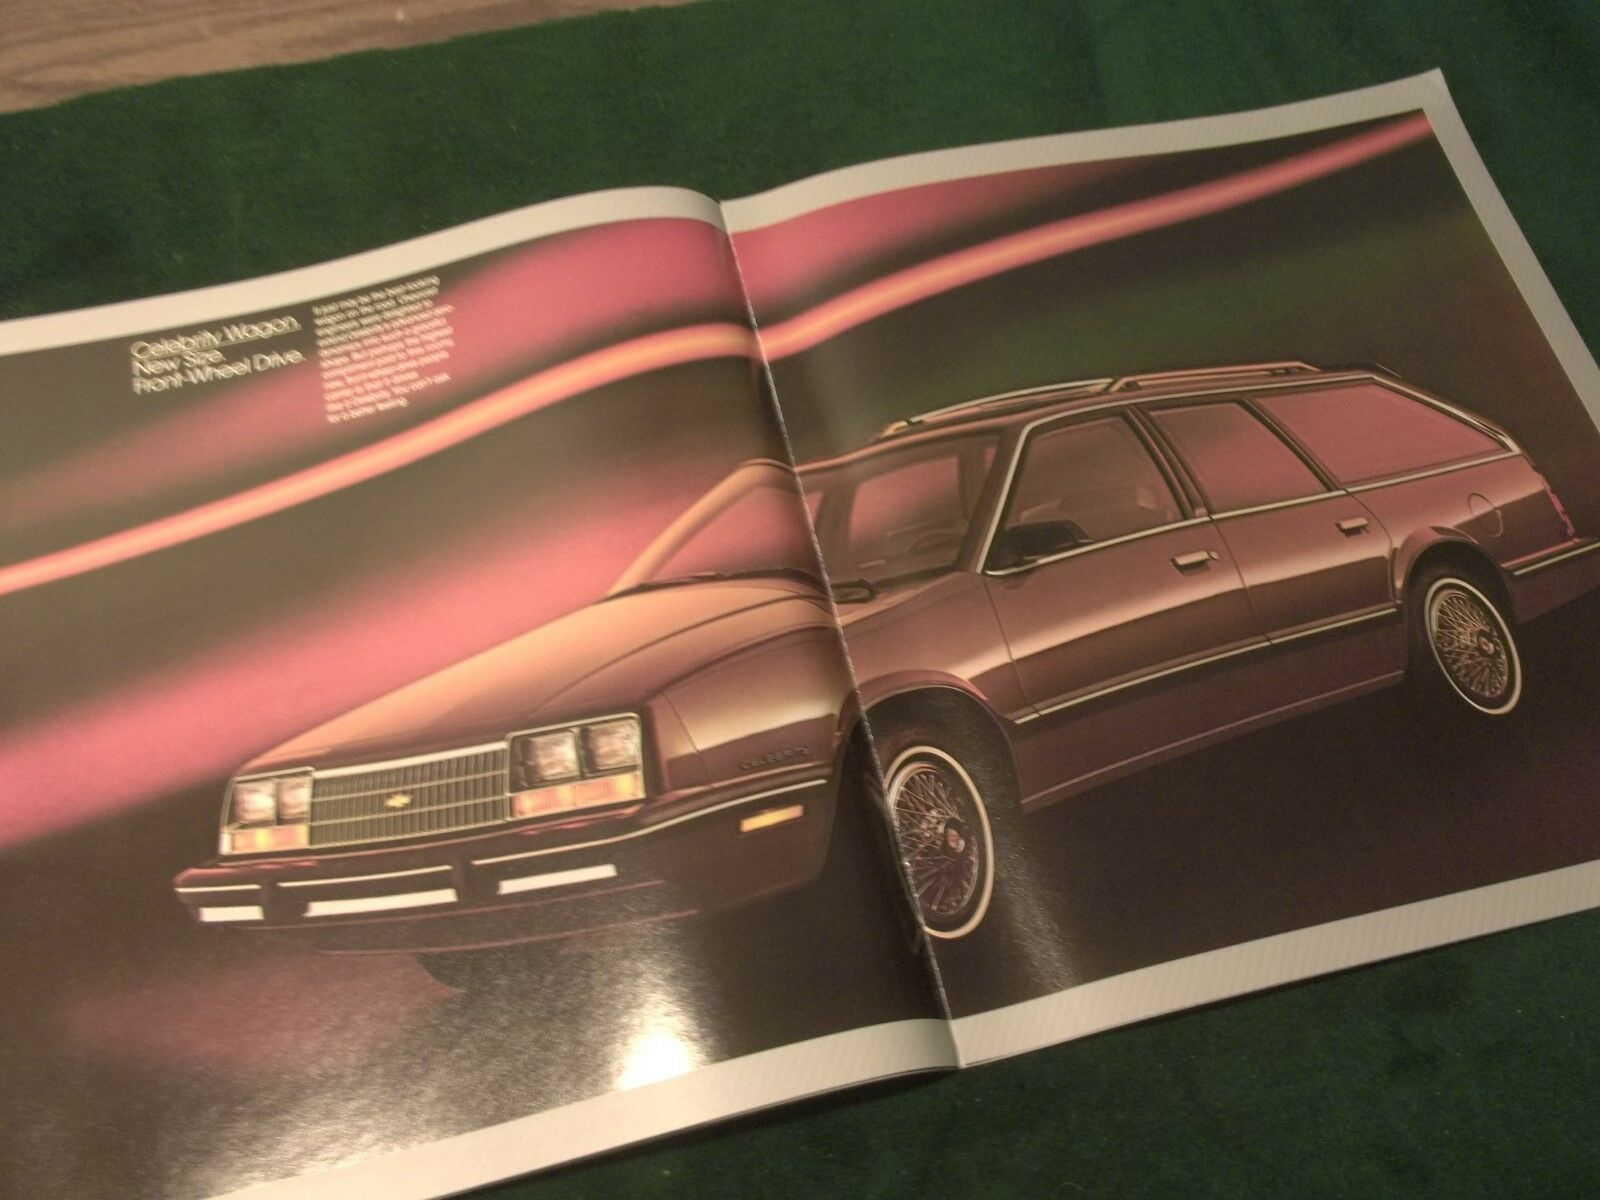 """MINT 1988 CHEVROLET CHEVY CAVALIER SALES BROCHURE 32 PAGES 11/"""" X 9/"""" NEW BOX 732"""